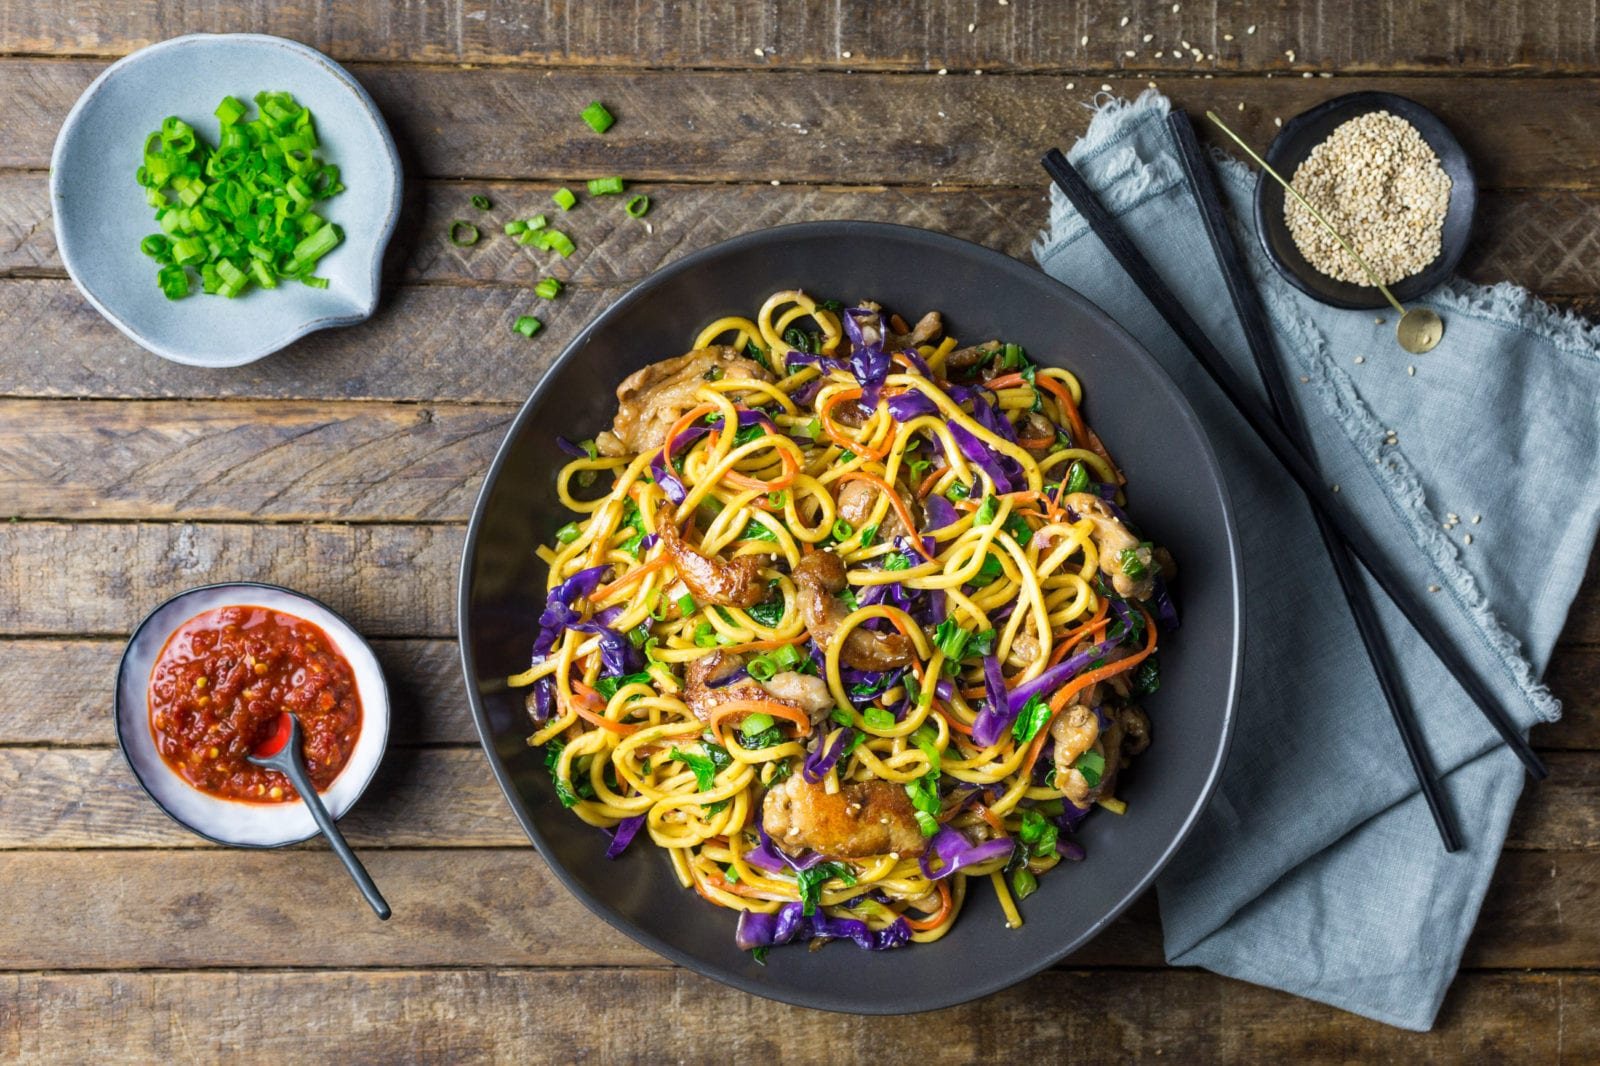 Stir Fried Lo Mein Noodles with Pork and Vegetables